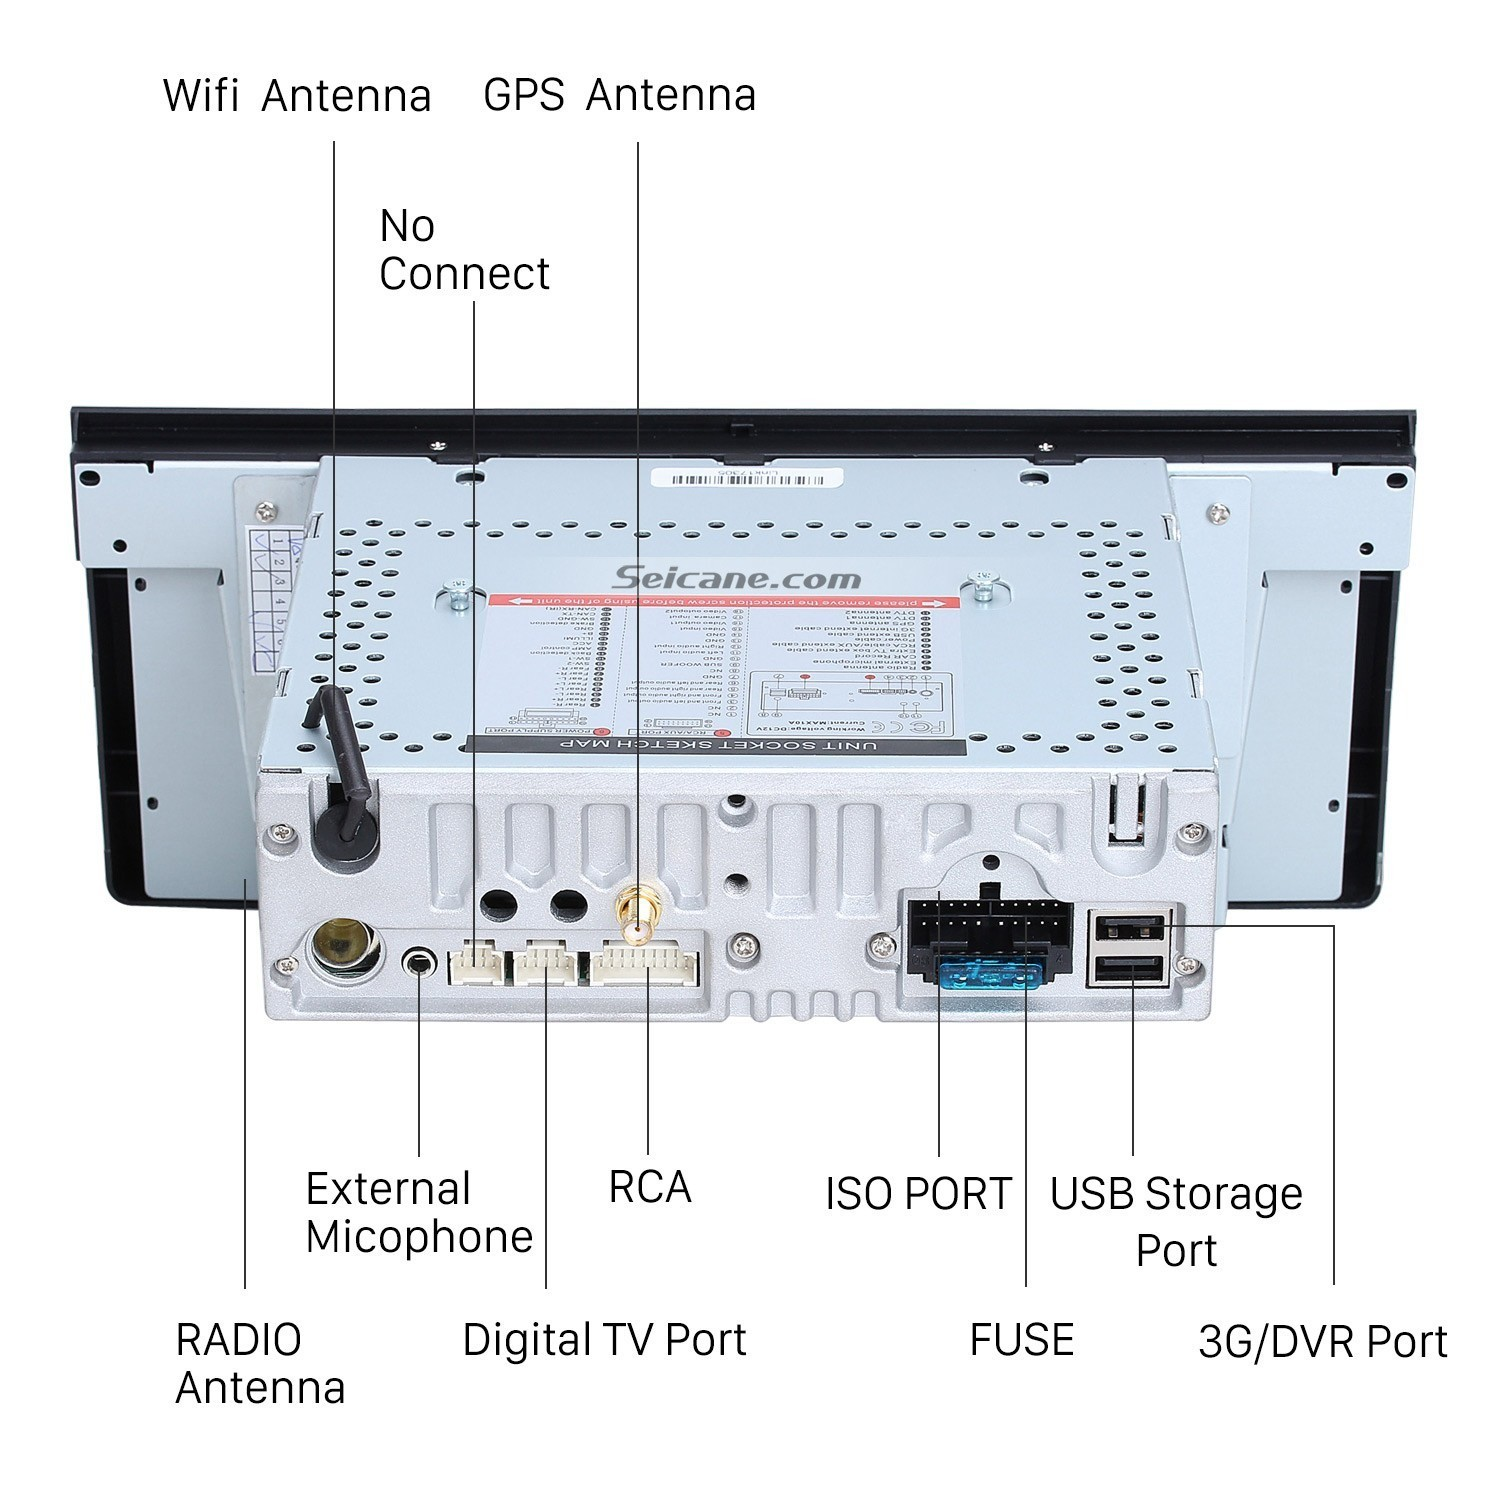 Furnace Wiring Diagram Unique aftermarket Radio Wiring Diagram Luxury Cheap All In E android 6 0